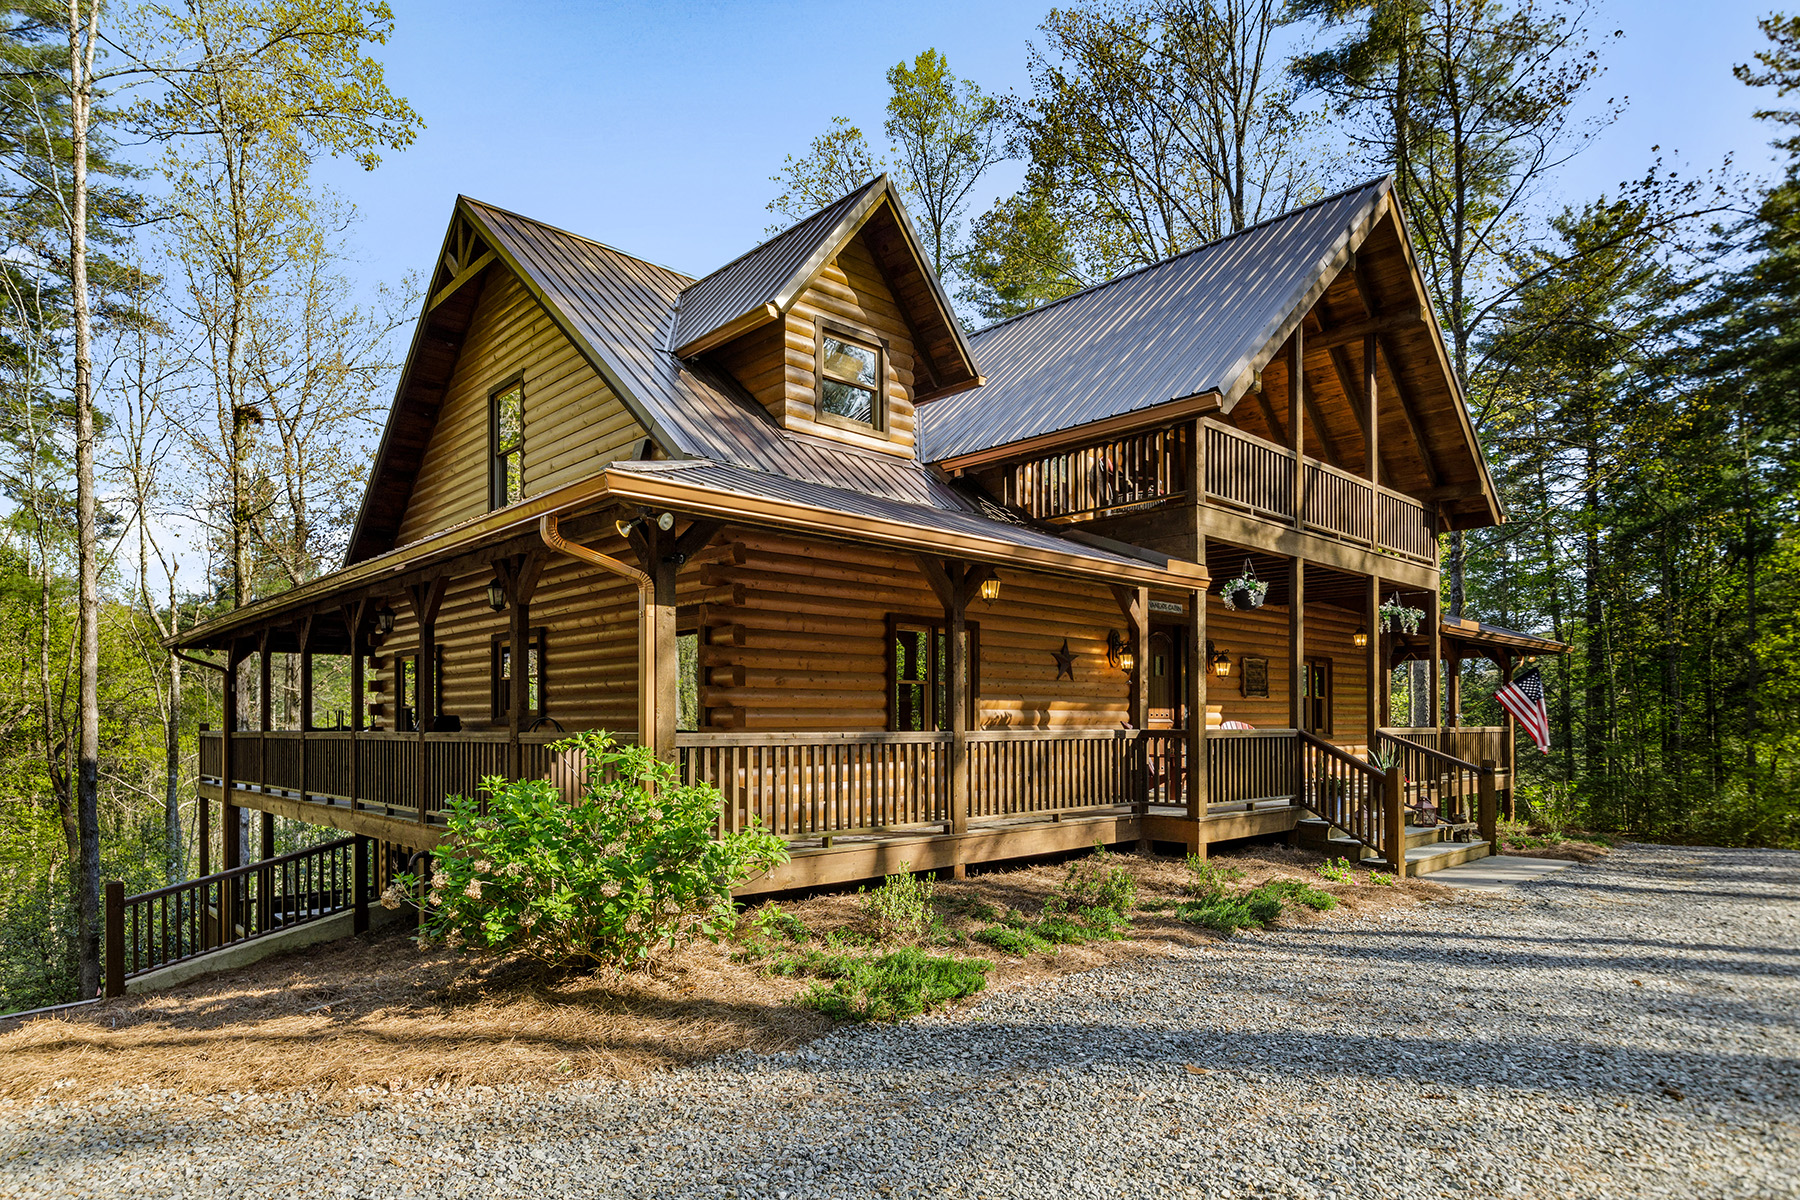 Single Family Homes for Sale at Indulge In Completely Self Sustained Luxury Mountain Property and Rustic Living 1011 Conasauga Road Ellijay, Georgia 30540 United States